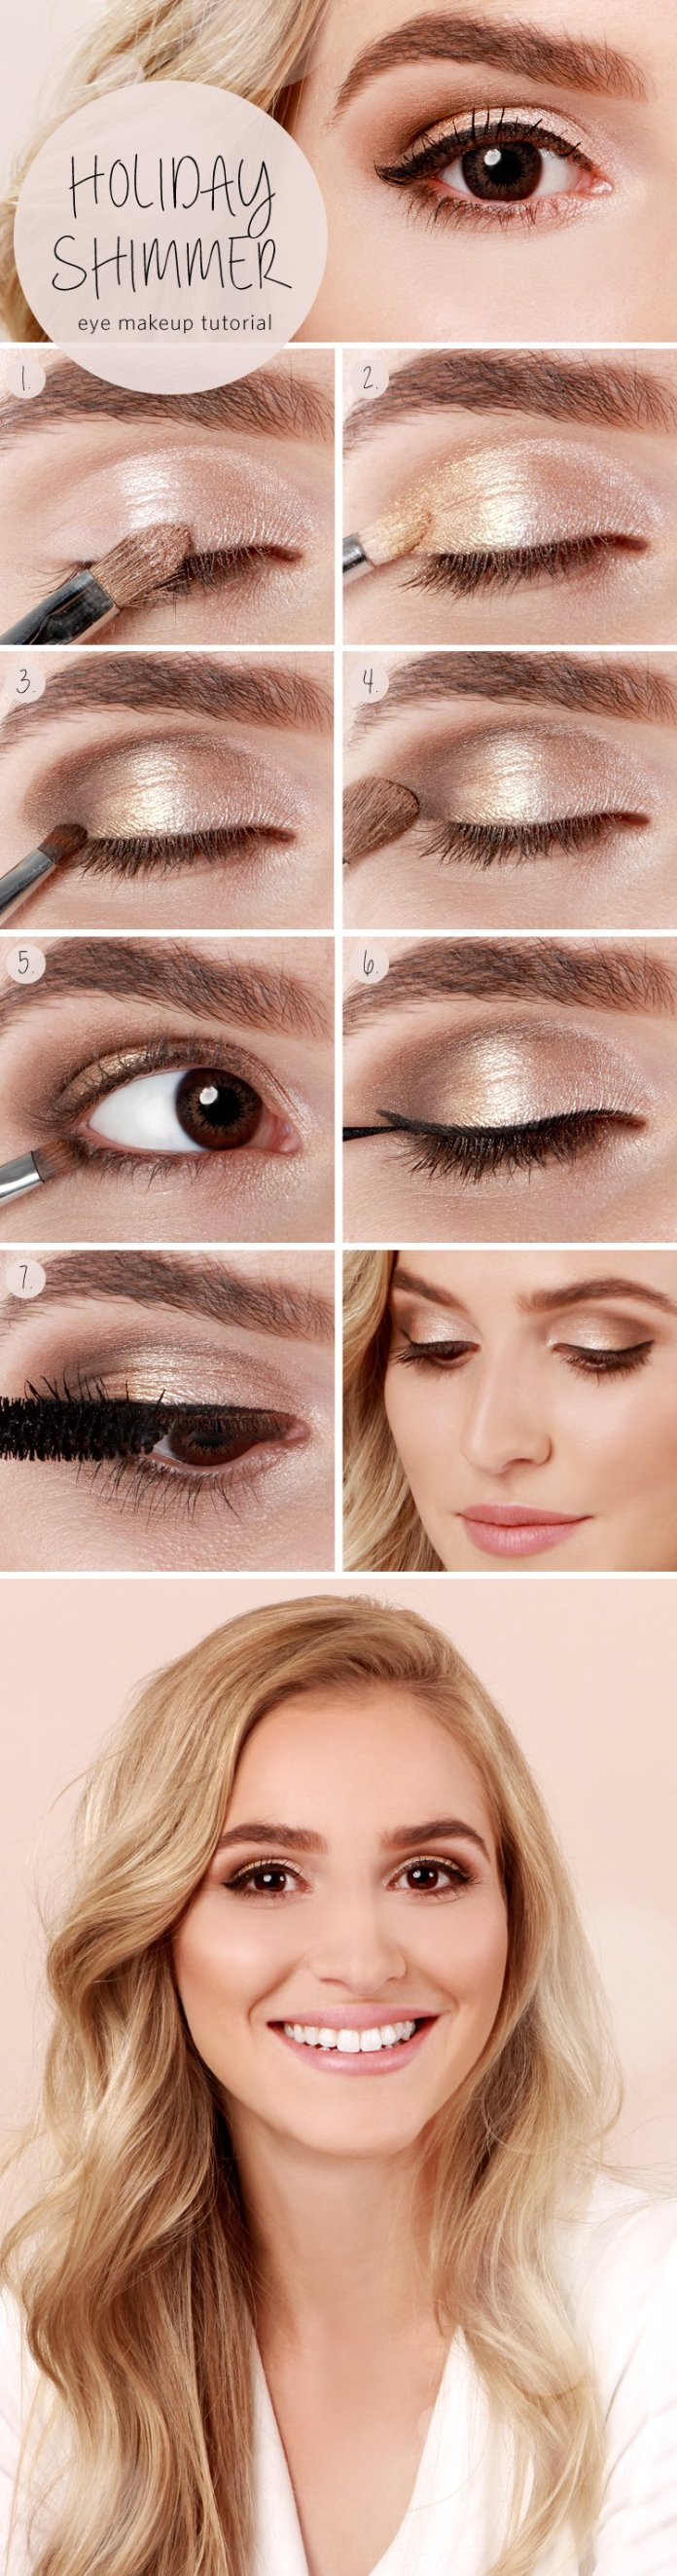 eye makeup pictutorials